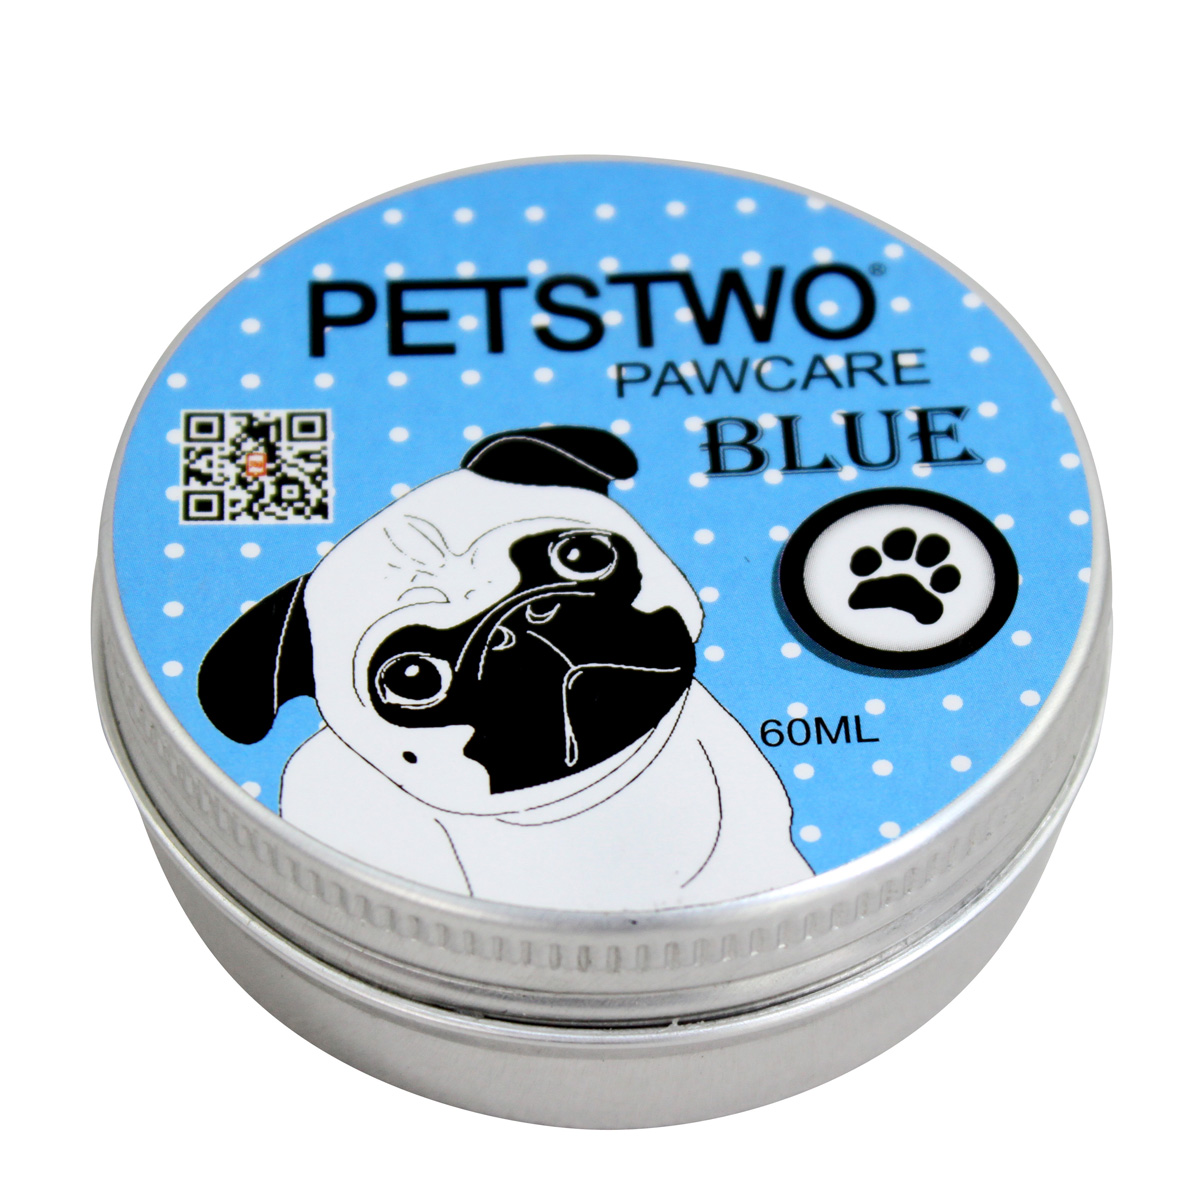 Porch net petstwo care tea tree oil palm treasure 60g anti cracking scratch cat and dog paw palm ointment